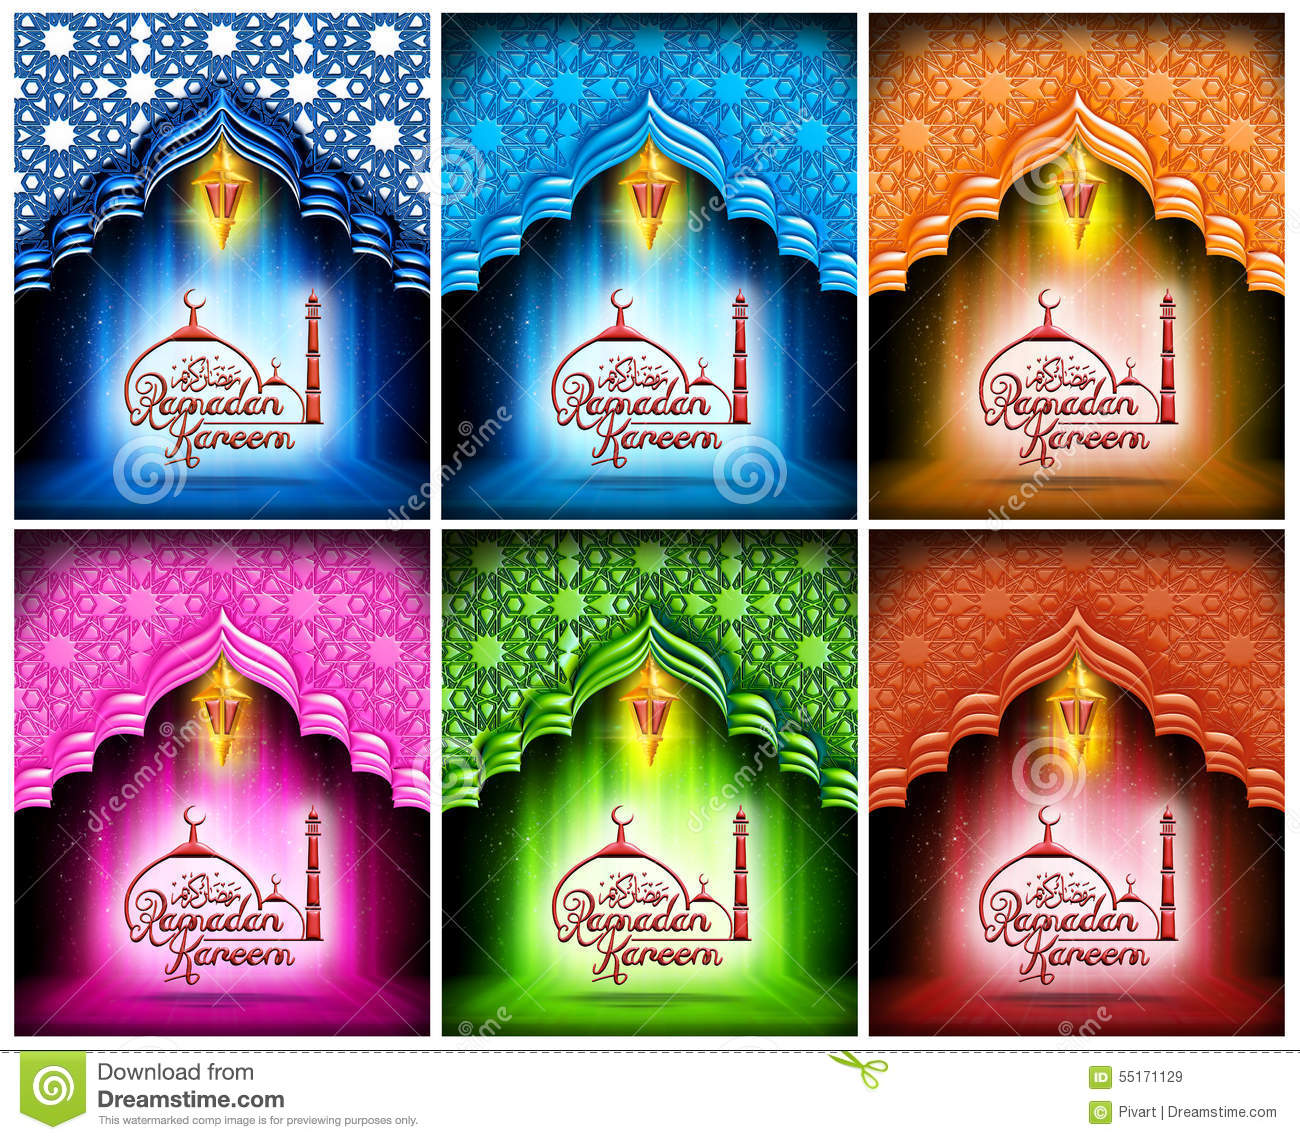 Greeting card design of mosque and stylish text ramadan kareem in 3d greeting card design of mosque and stylish text ramadan kareem in 3d kristyandbryce Image collections